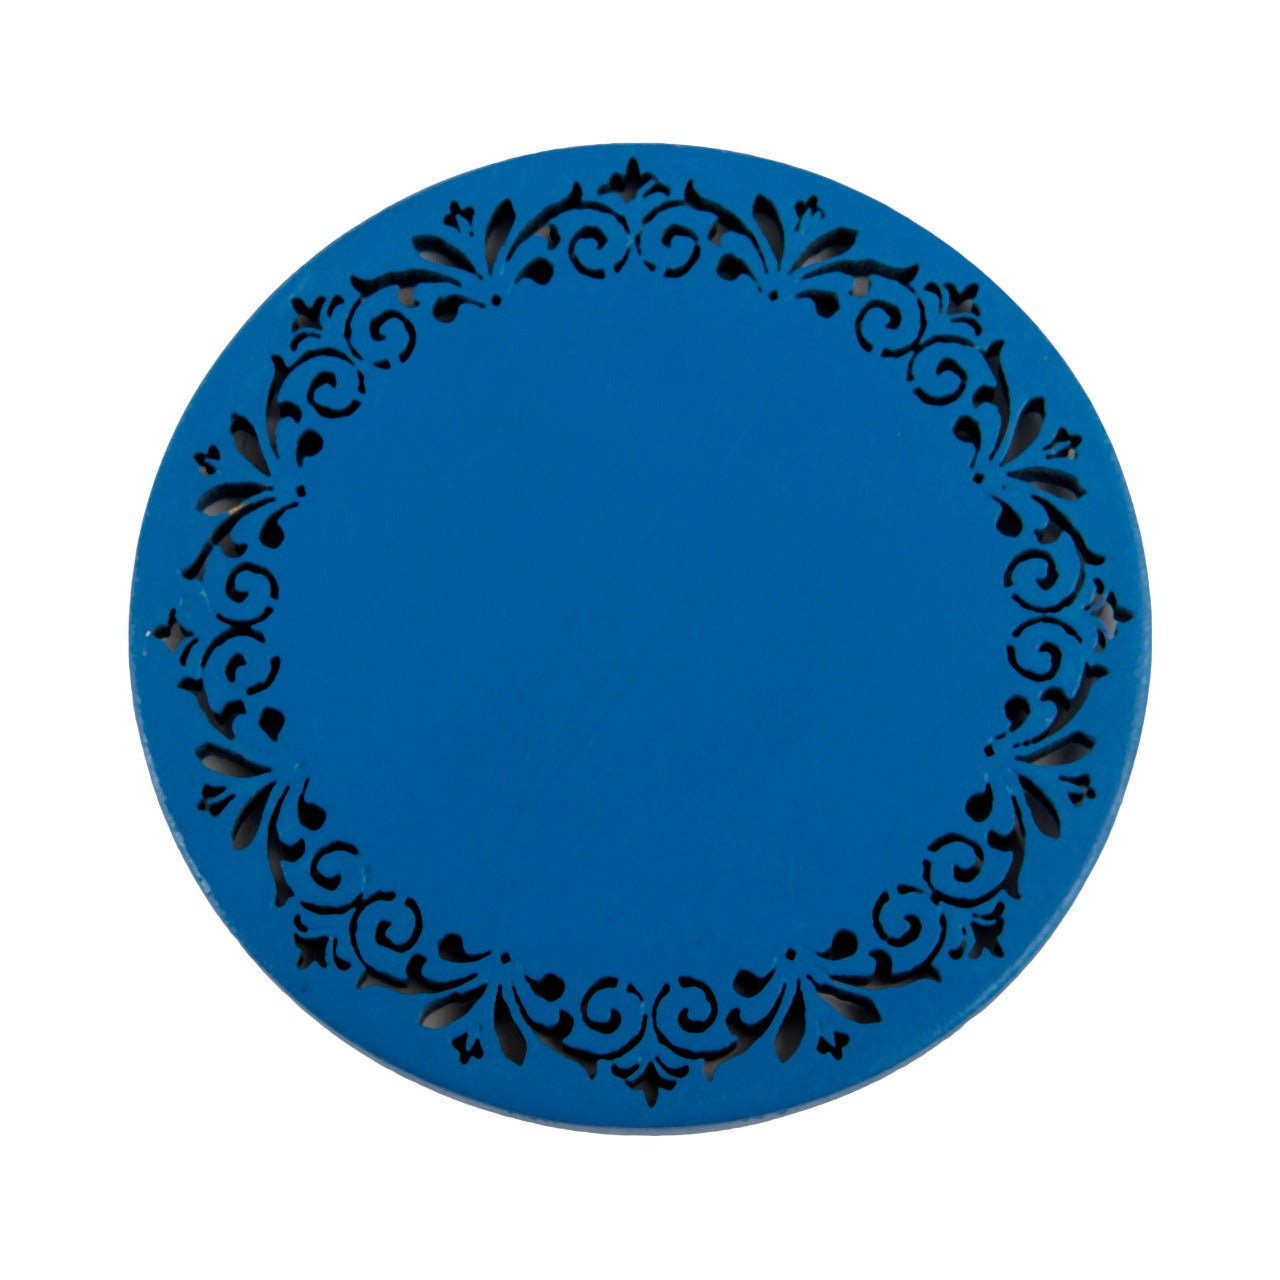 A Tiny Mistake Blue Round Wooden Coasters (Set of 4), 7.5 x 7.5 x 0.5 cm